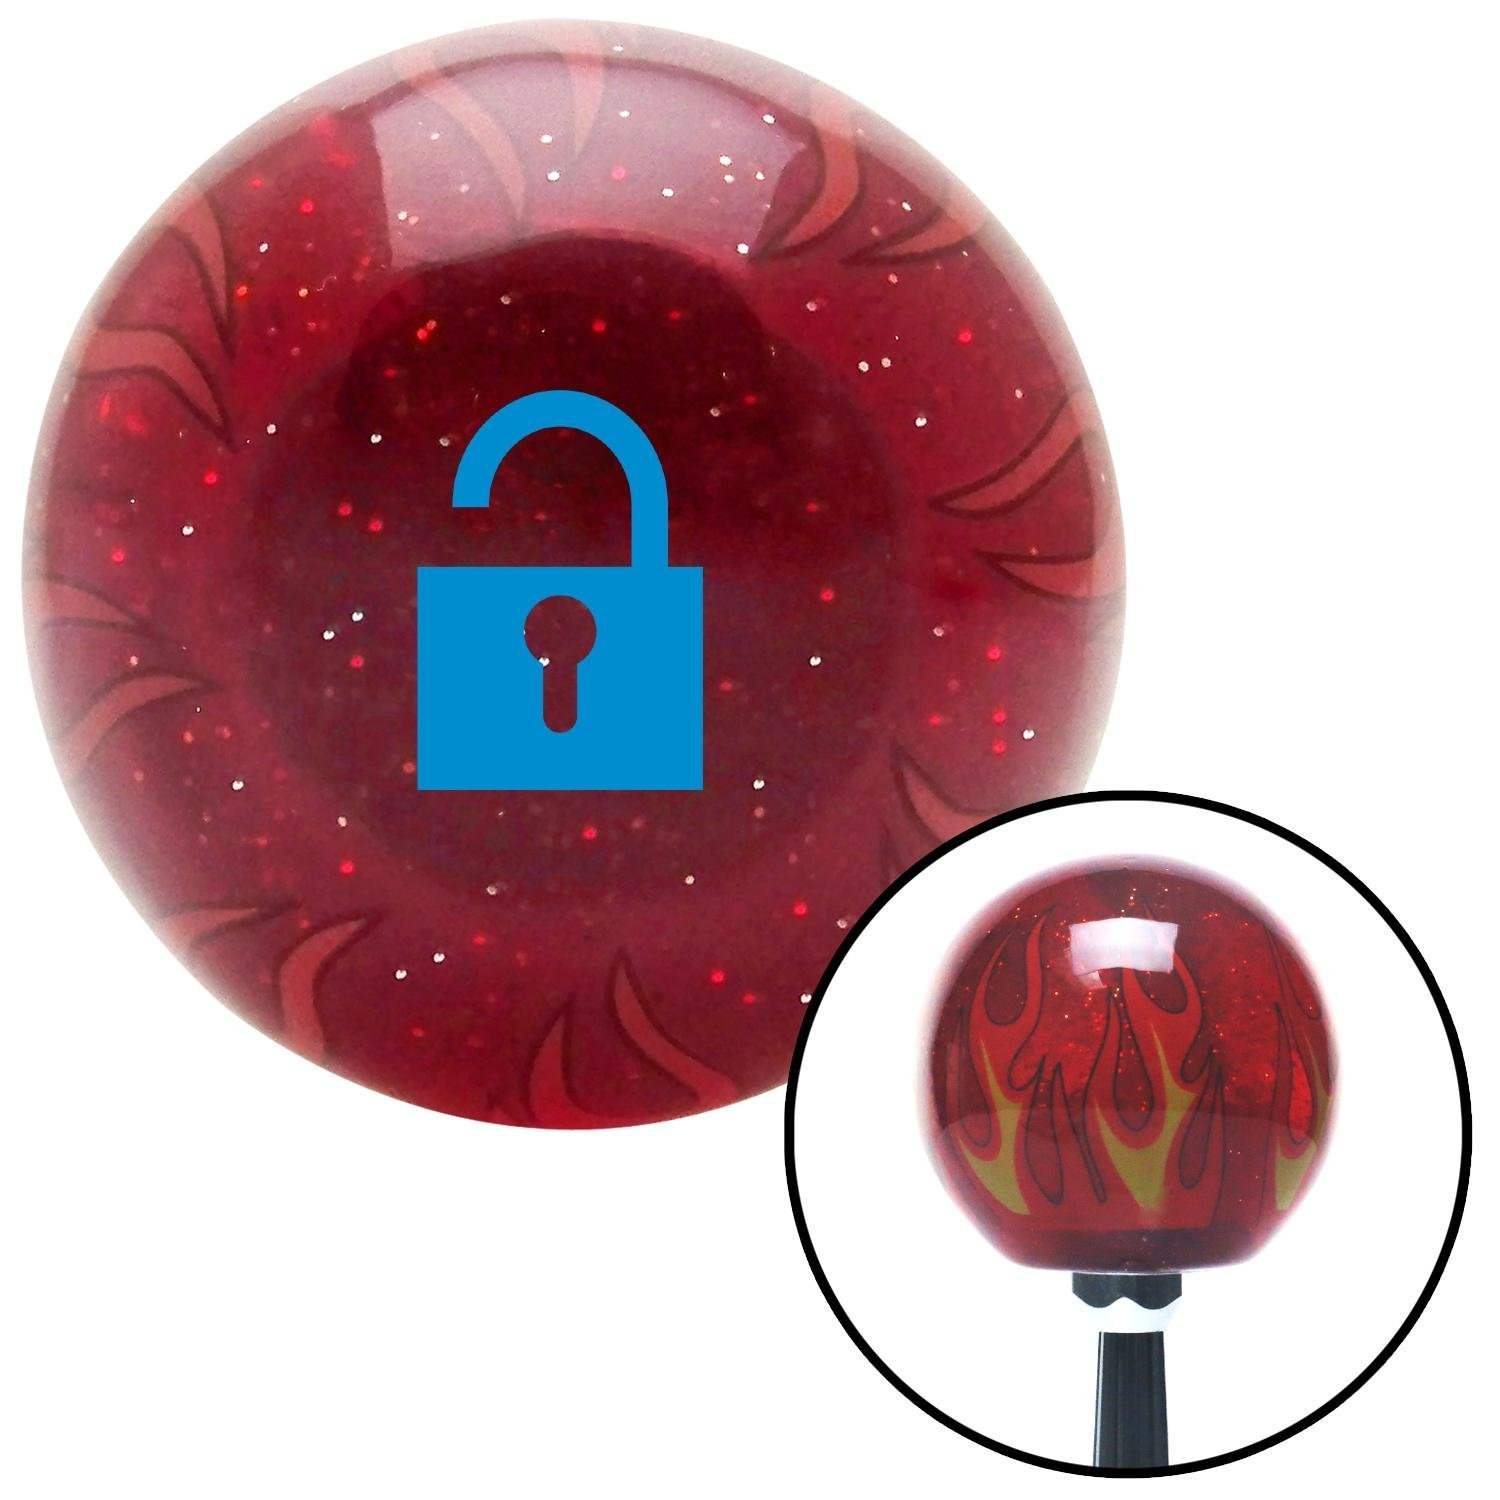 Blue Unlocked Lock American Shifter 239758 Red Flame Metal Flake Shift Knob with M16 x 1.5 Insert